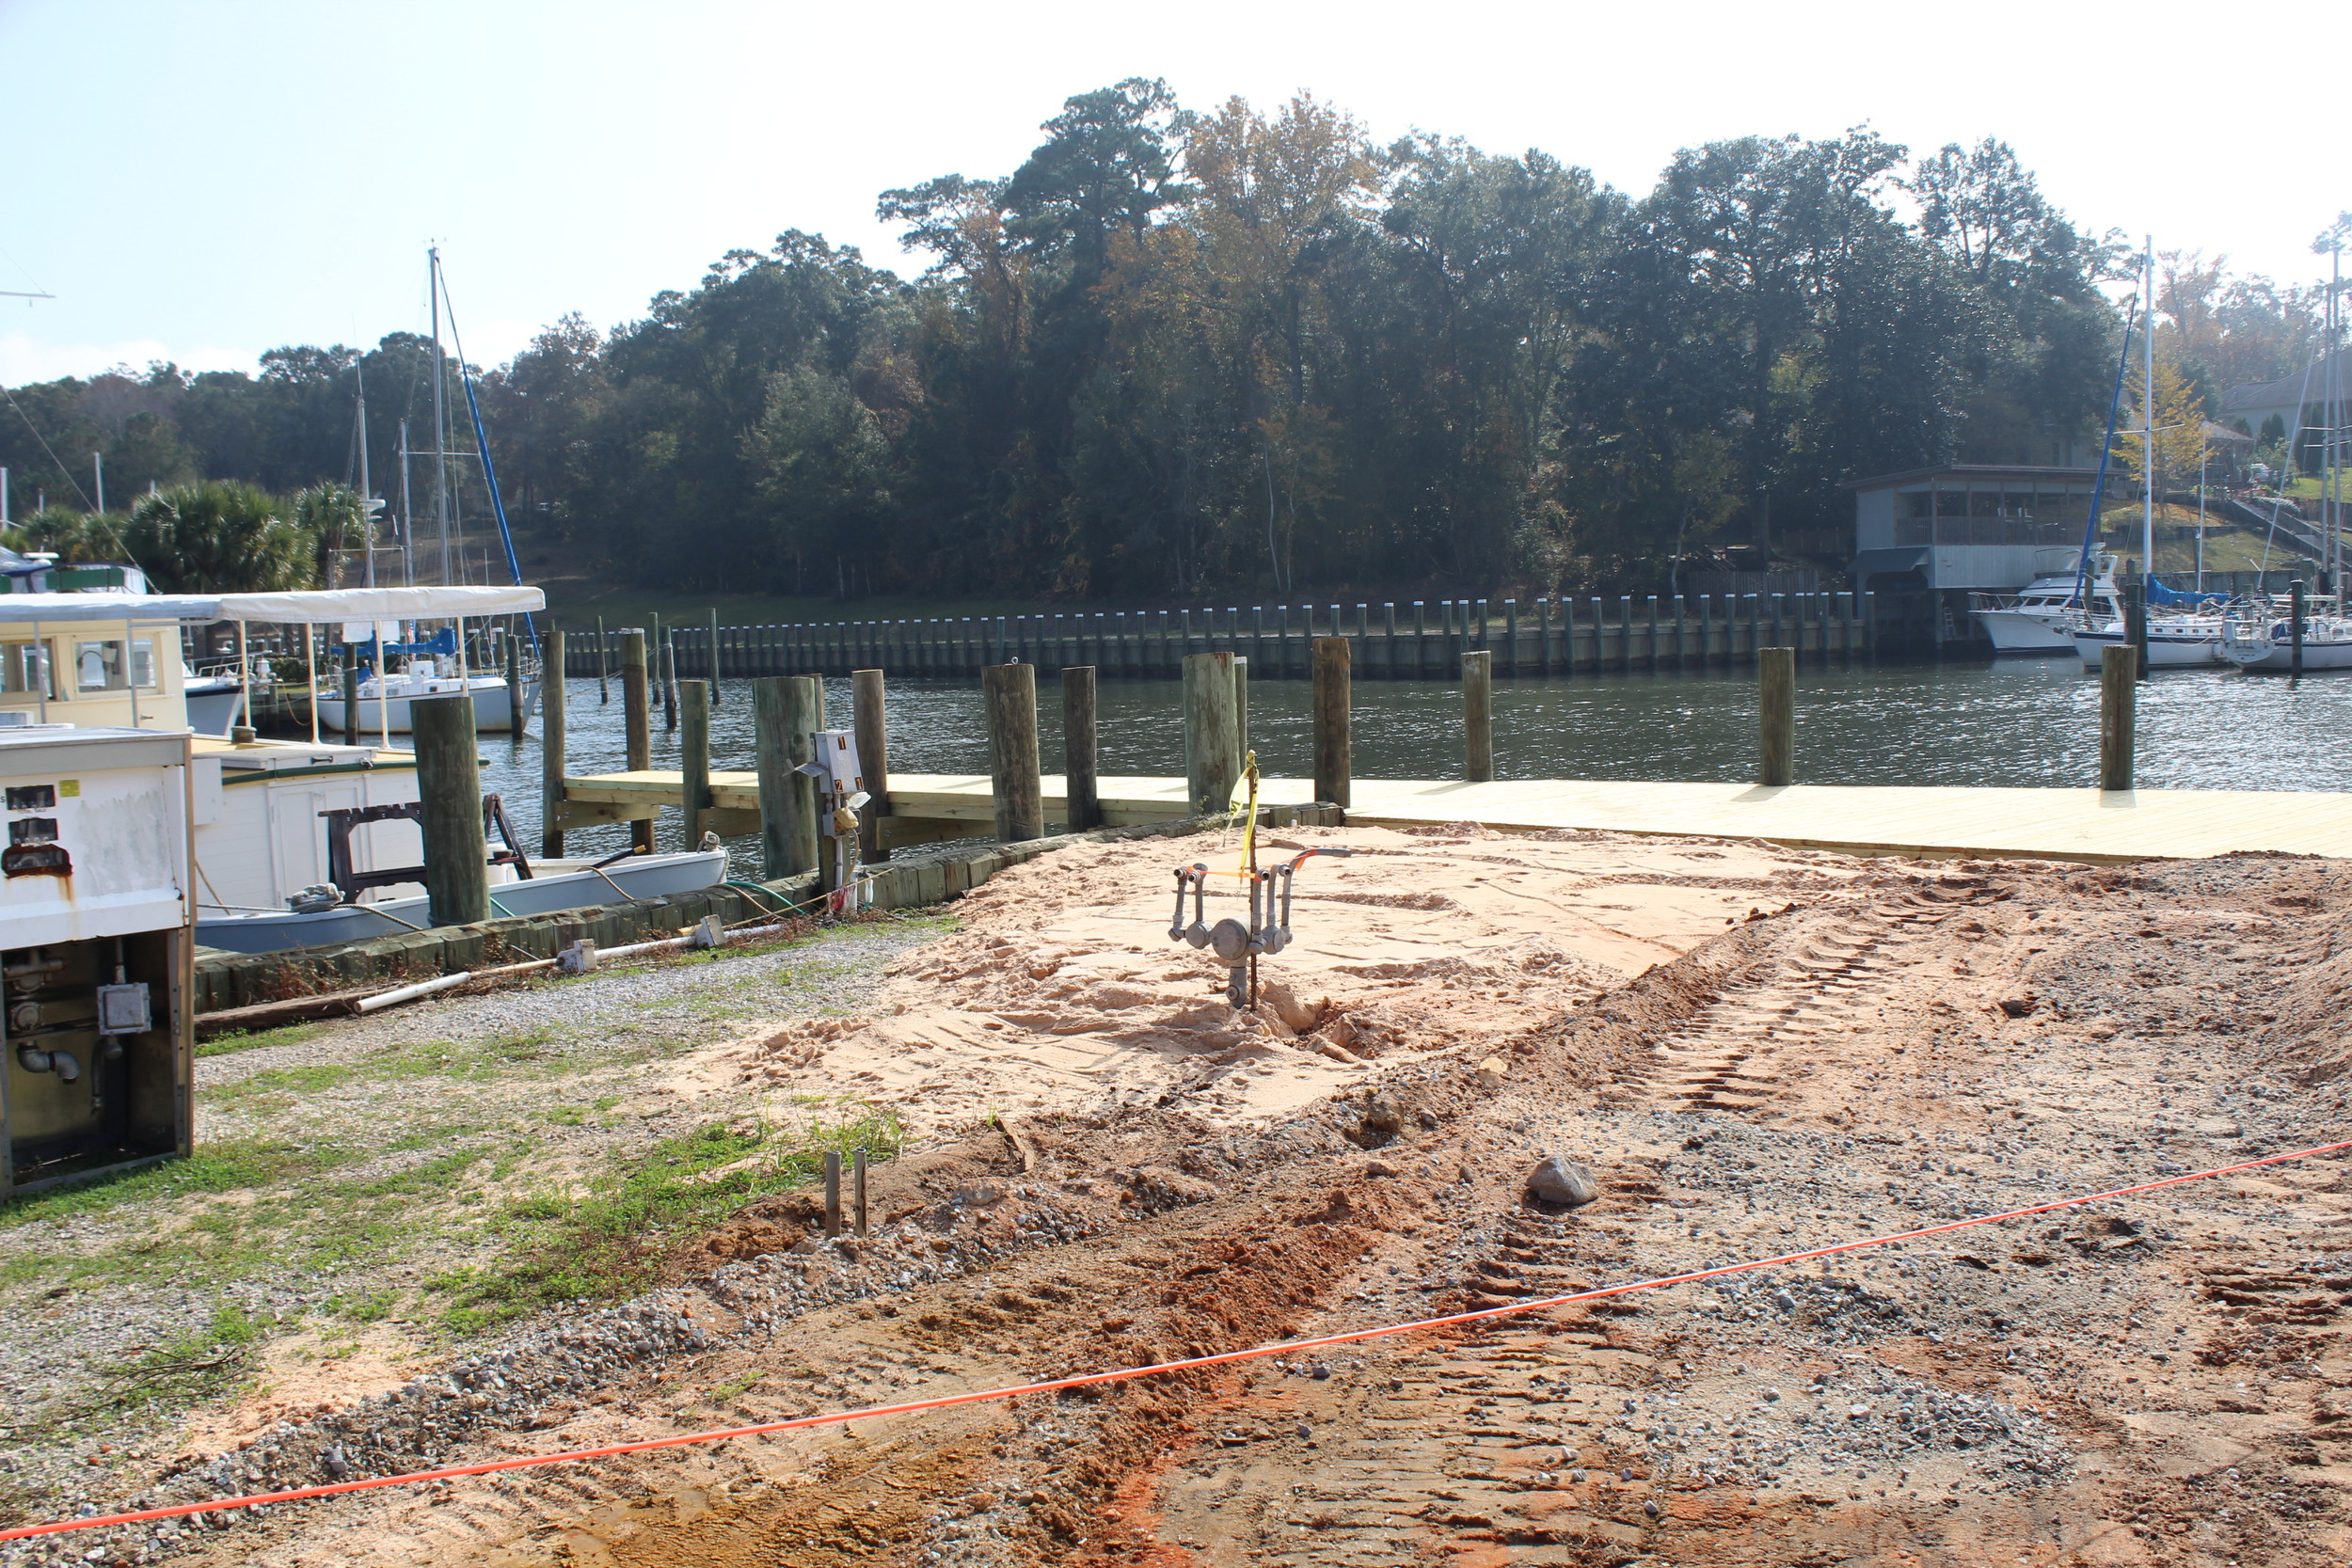 The new fuel dock was a high priority upon the city's take back of the marina, but erosion issues slowed some of the replacement.